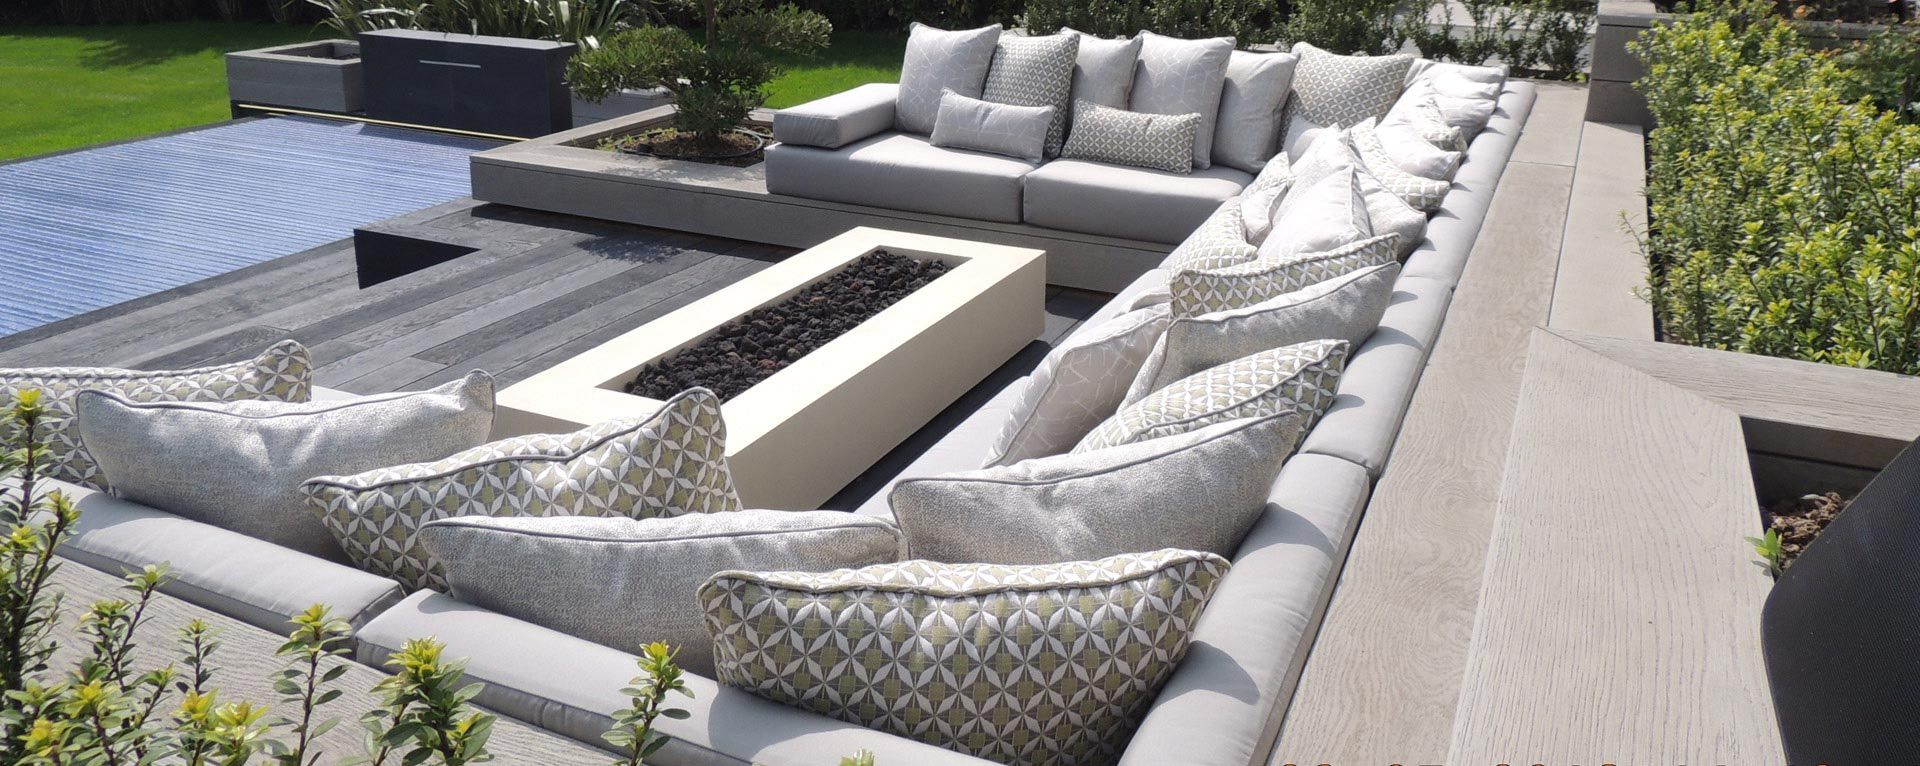 Bespoke waterproof and water repellent Outdoor Cushions